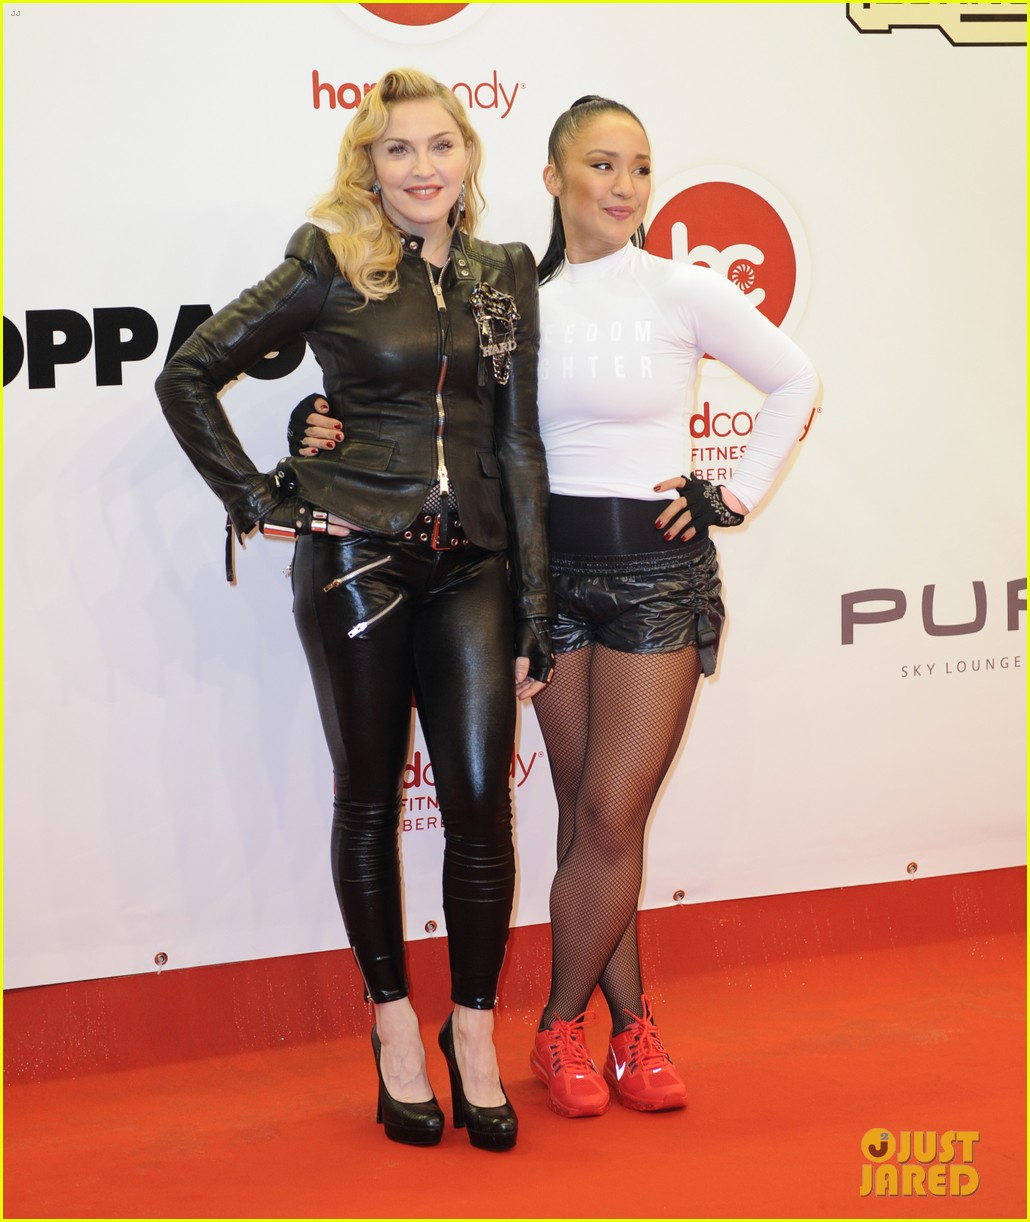 madonna hard candy fitness club opening in berlin 12